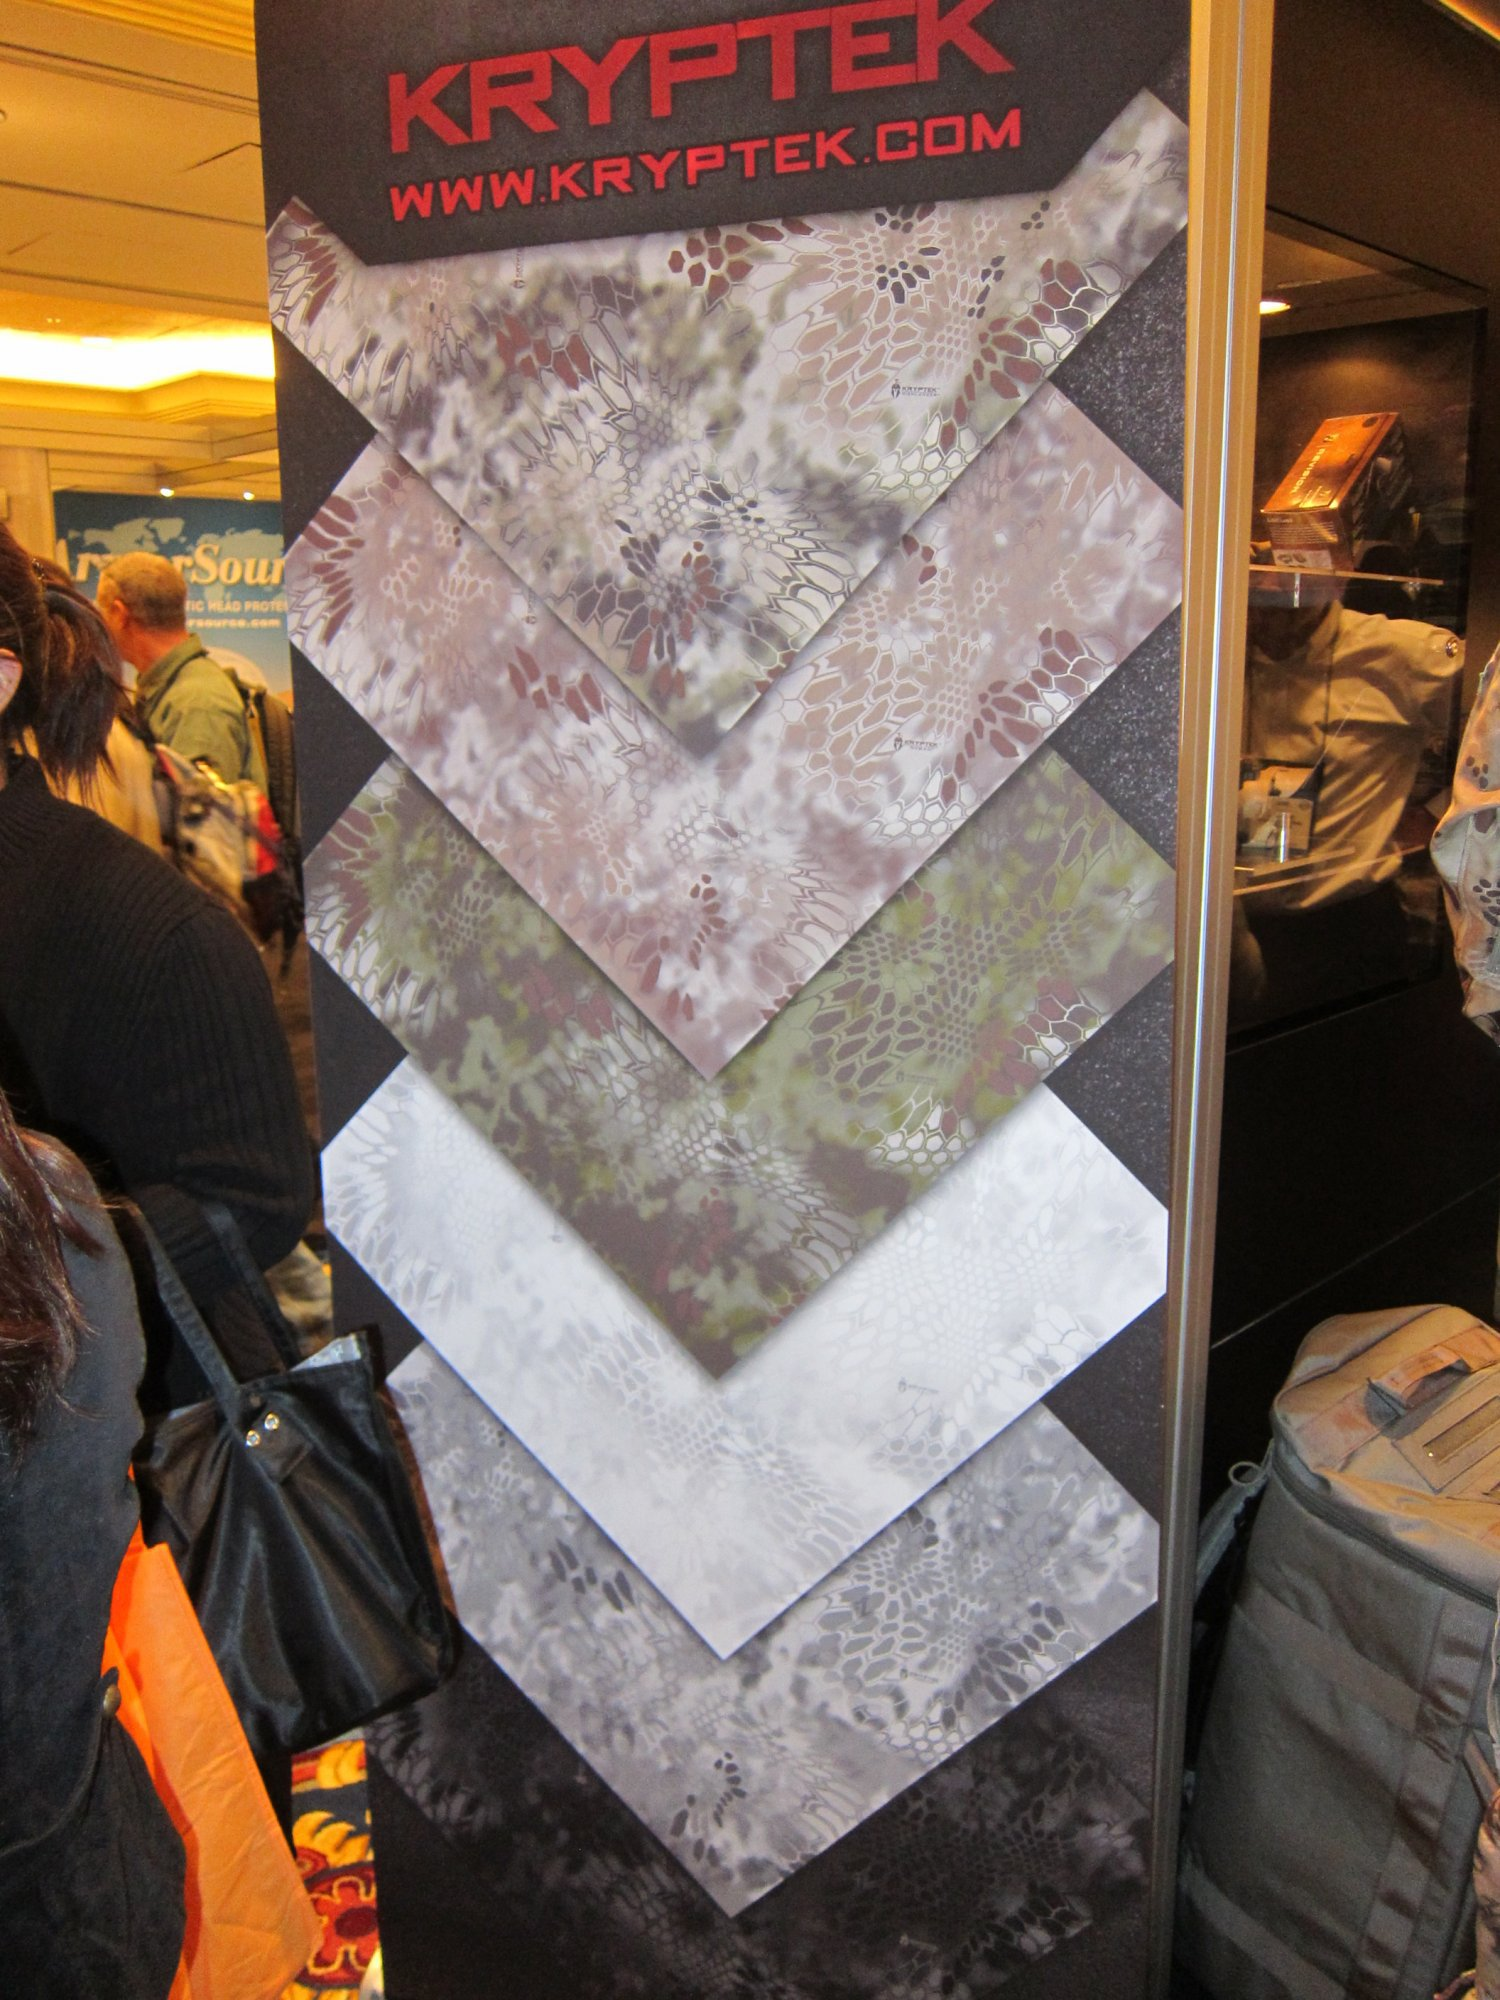 KRYPTEK LEAF Combat Camouflage Source One Distributing SOD Booth SHOT Show 2012 1 18 2012 DefenseReview.com DR 4 Kryptek LEAF/Camo Technologies 3 Dimensional (3 D)/Multi Directional Biomimetic Military Combat Camouflage (Camo) Patterns at SHOT Show 2012: Is the Armys Future Soldier Going Reptilian? (Video!)